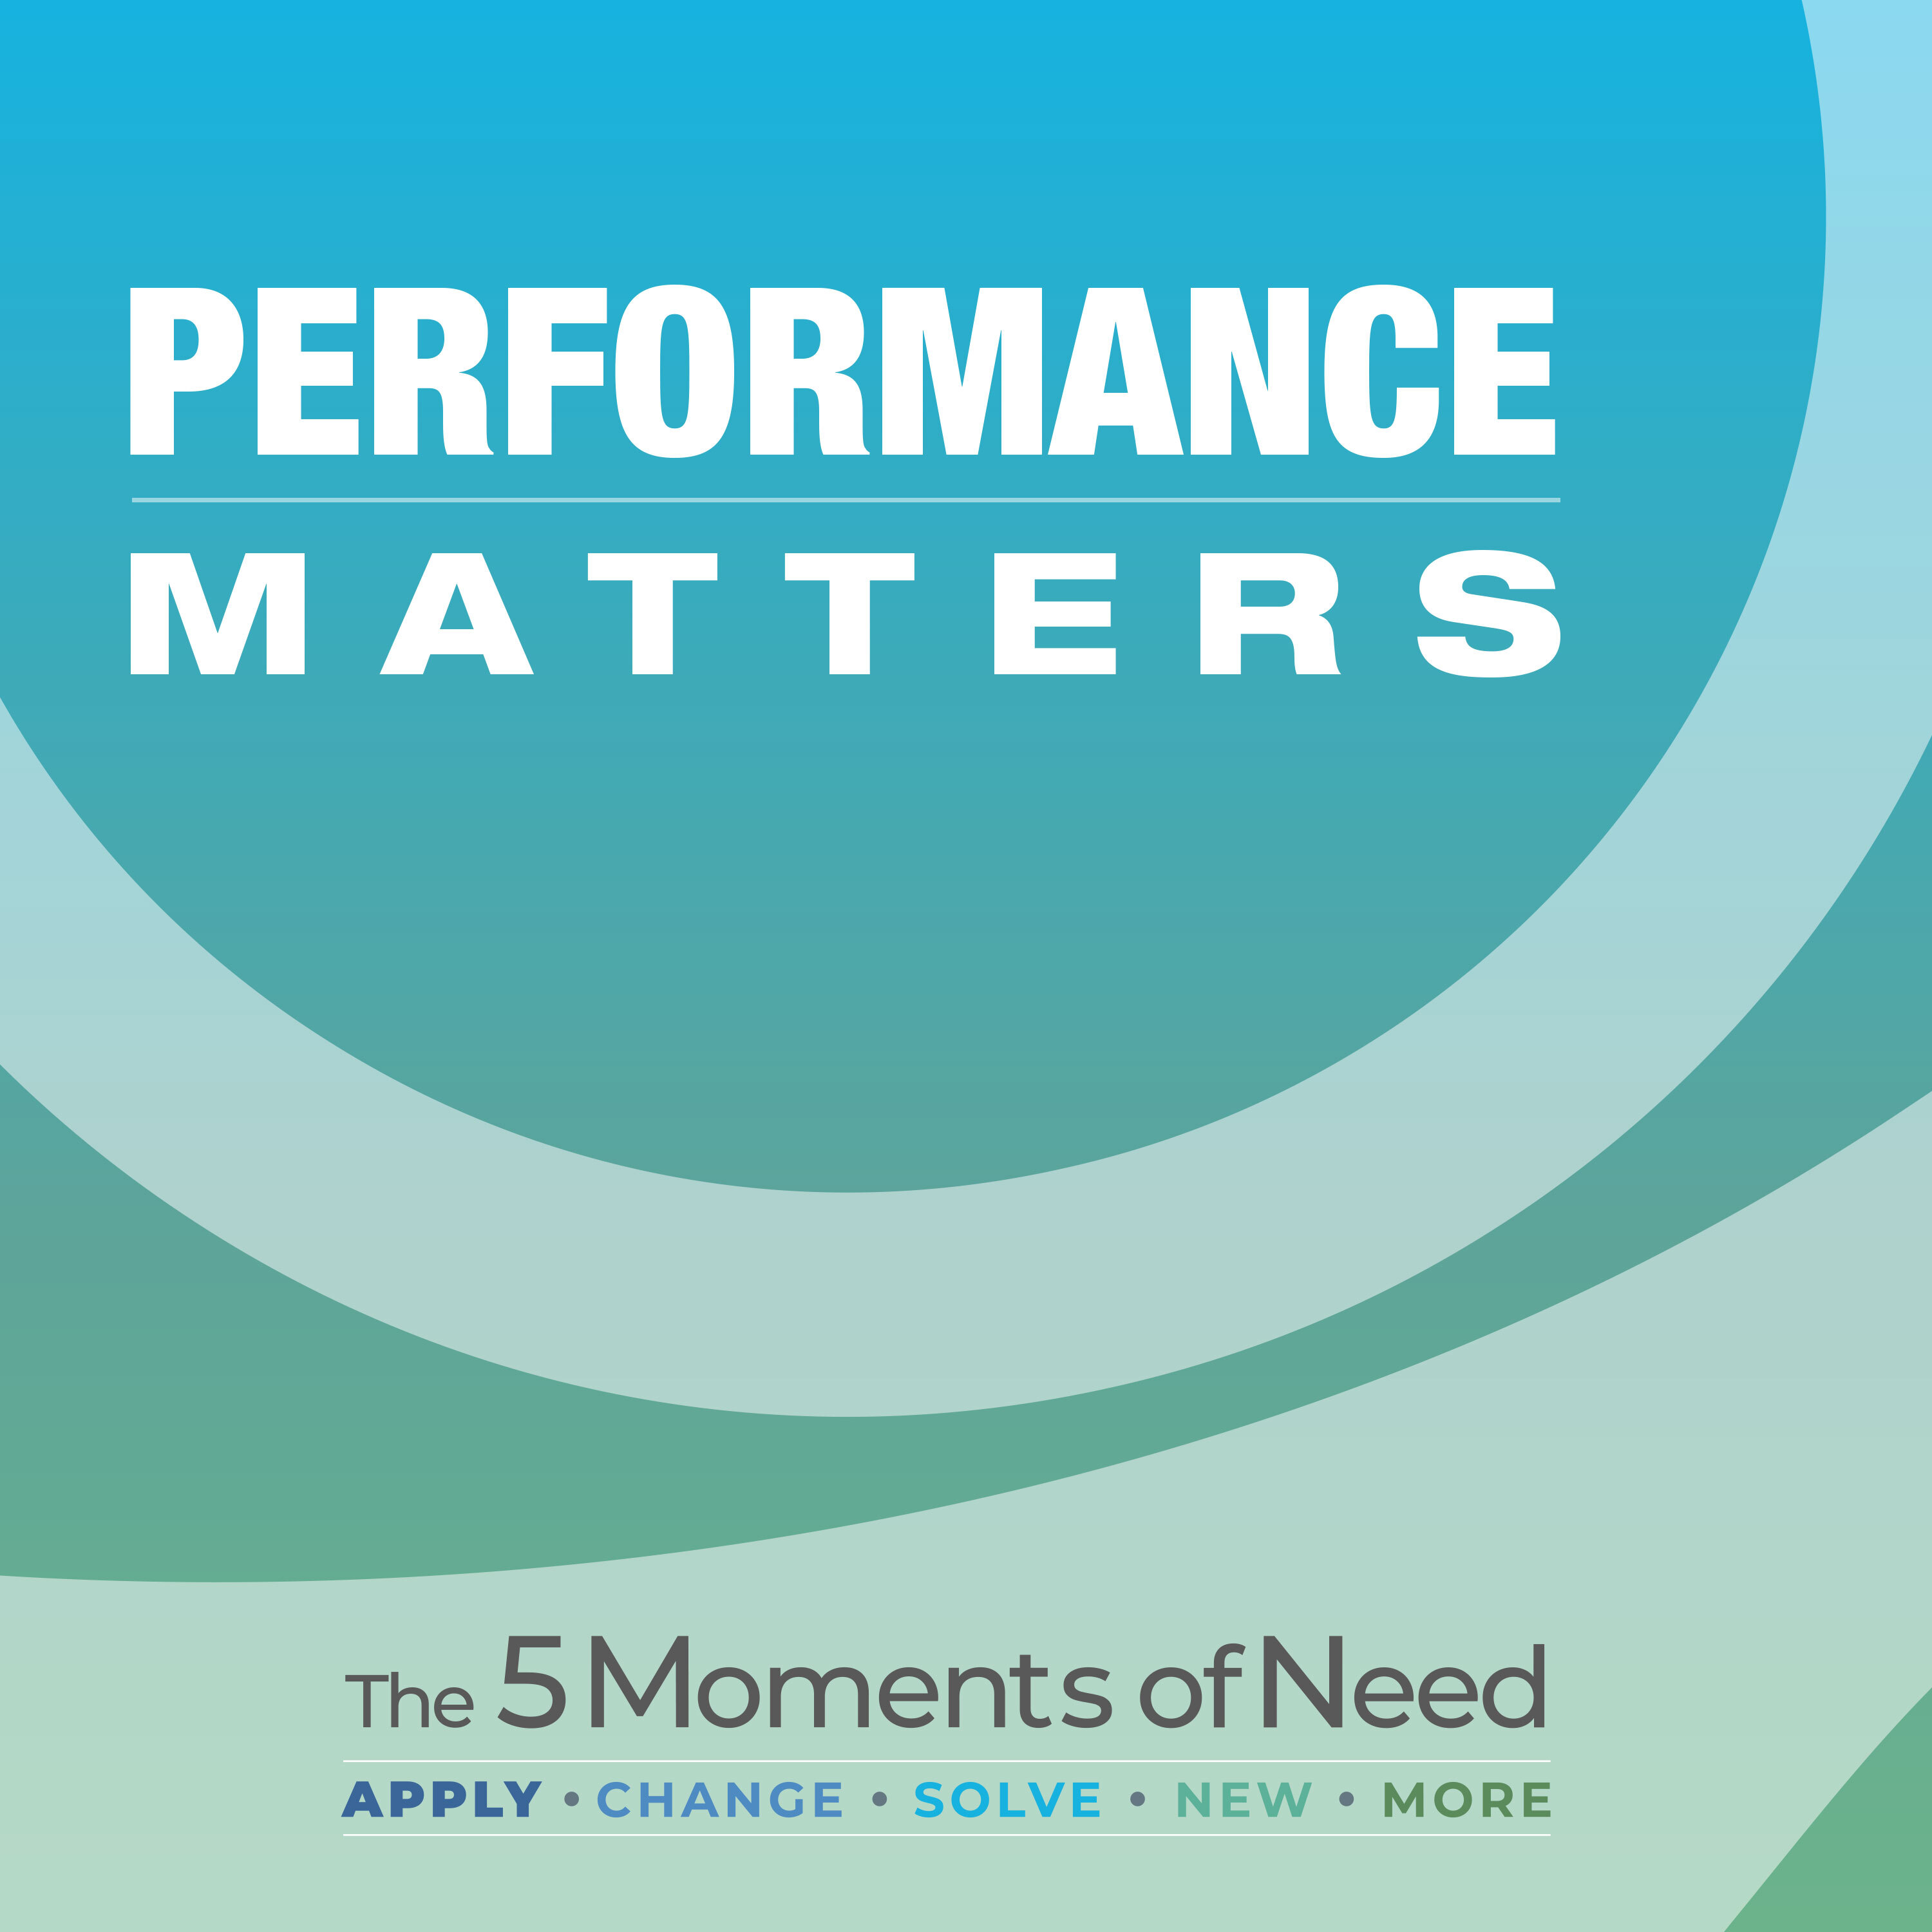 Methodology Matters | Wasted Work Time